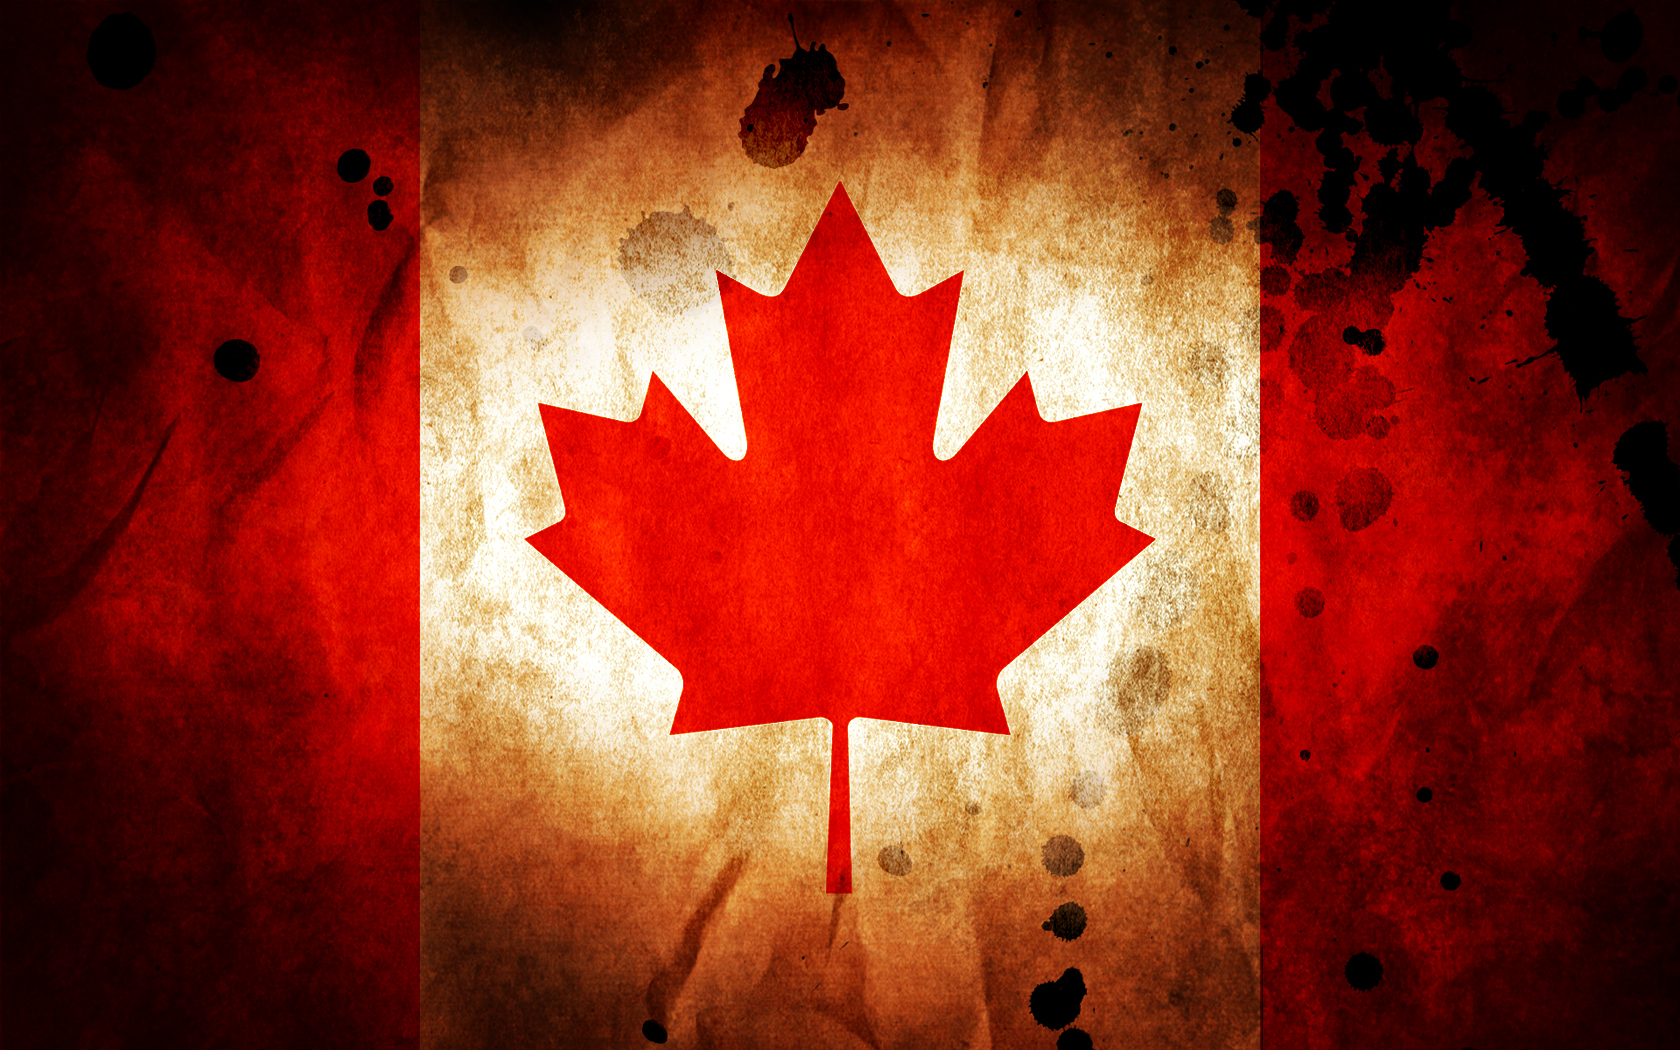 1050 Wallpapers Wallpaper 15098 flags flag of canadajpg 1680x1050 1680x1050